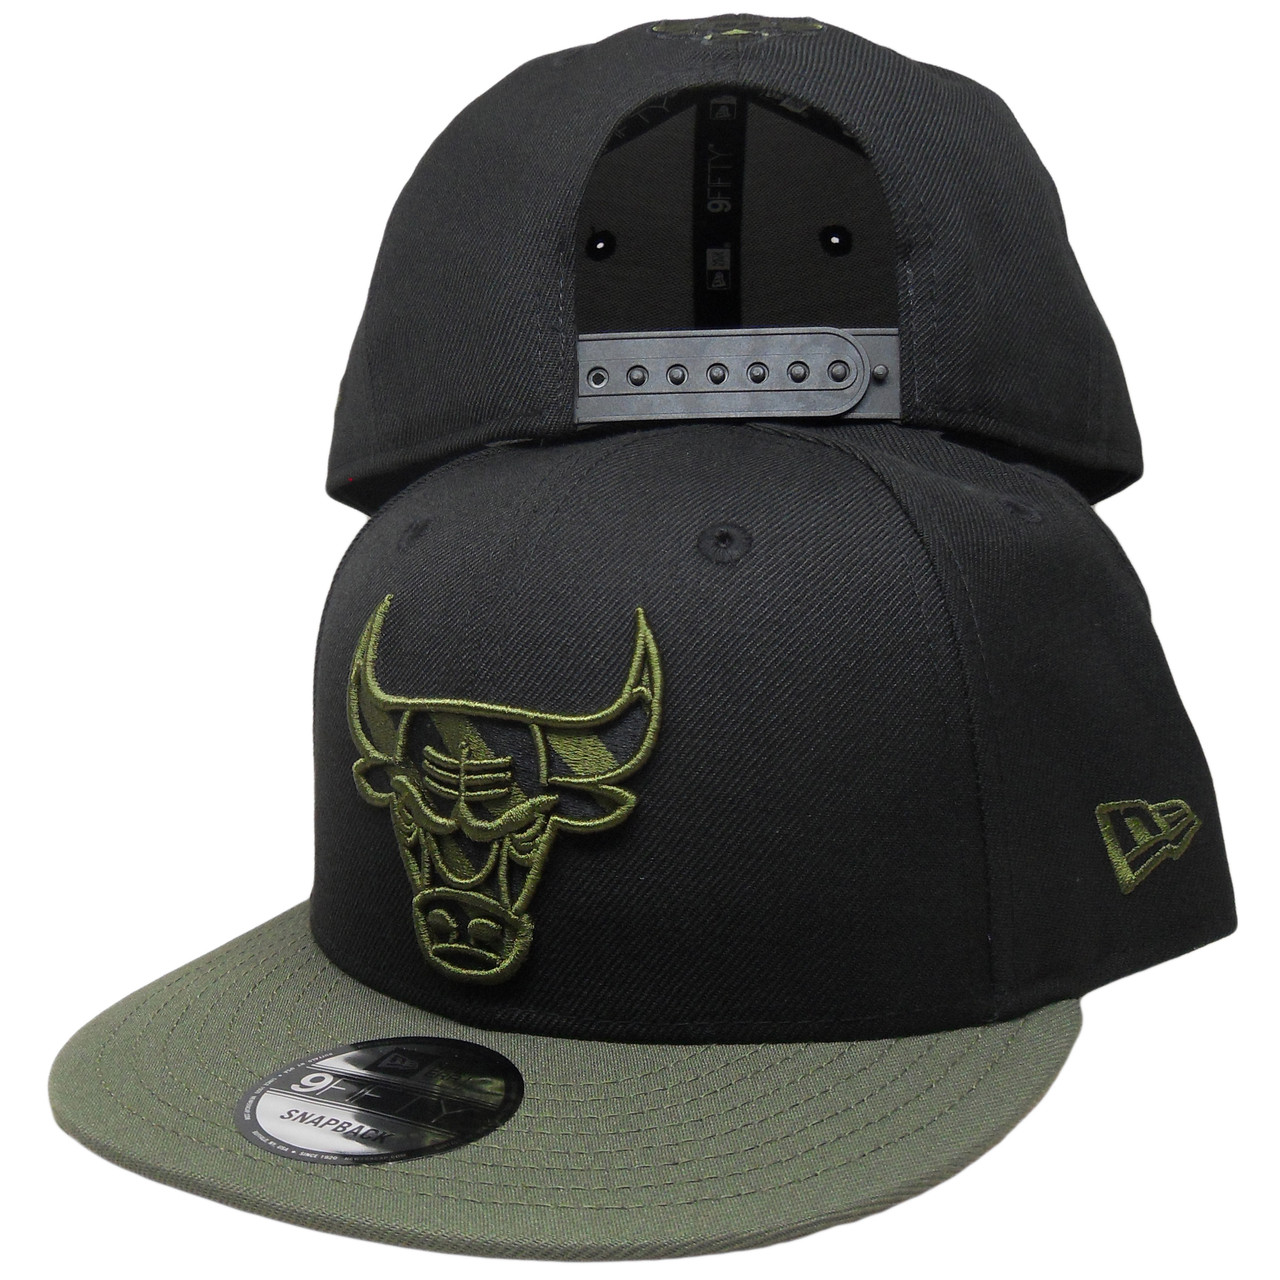 2d8752a9d1b ... italy chicago bulls new era custom 9fifty snapback hat black olive  ef54b 5995f